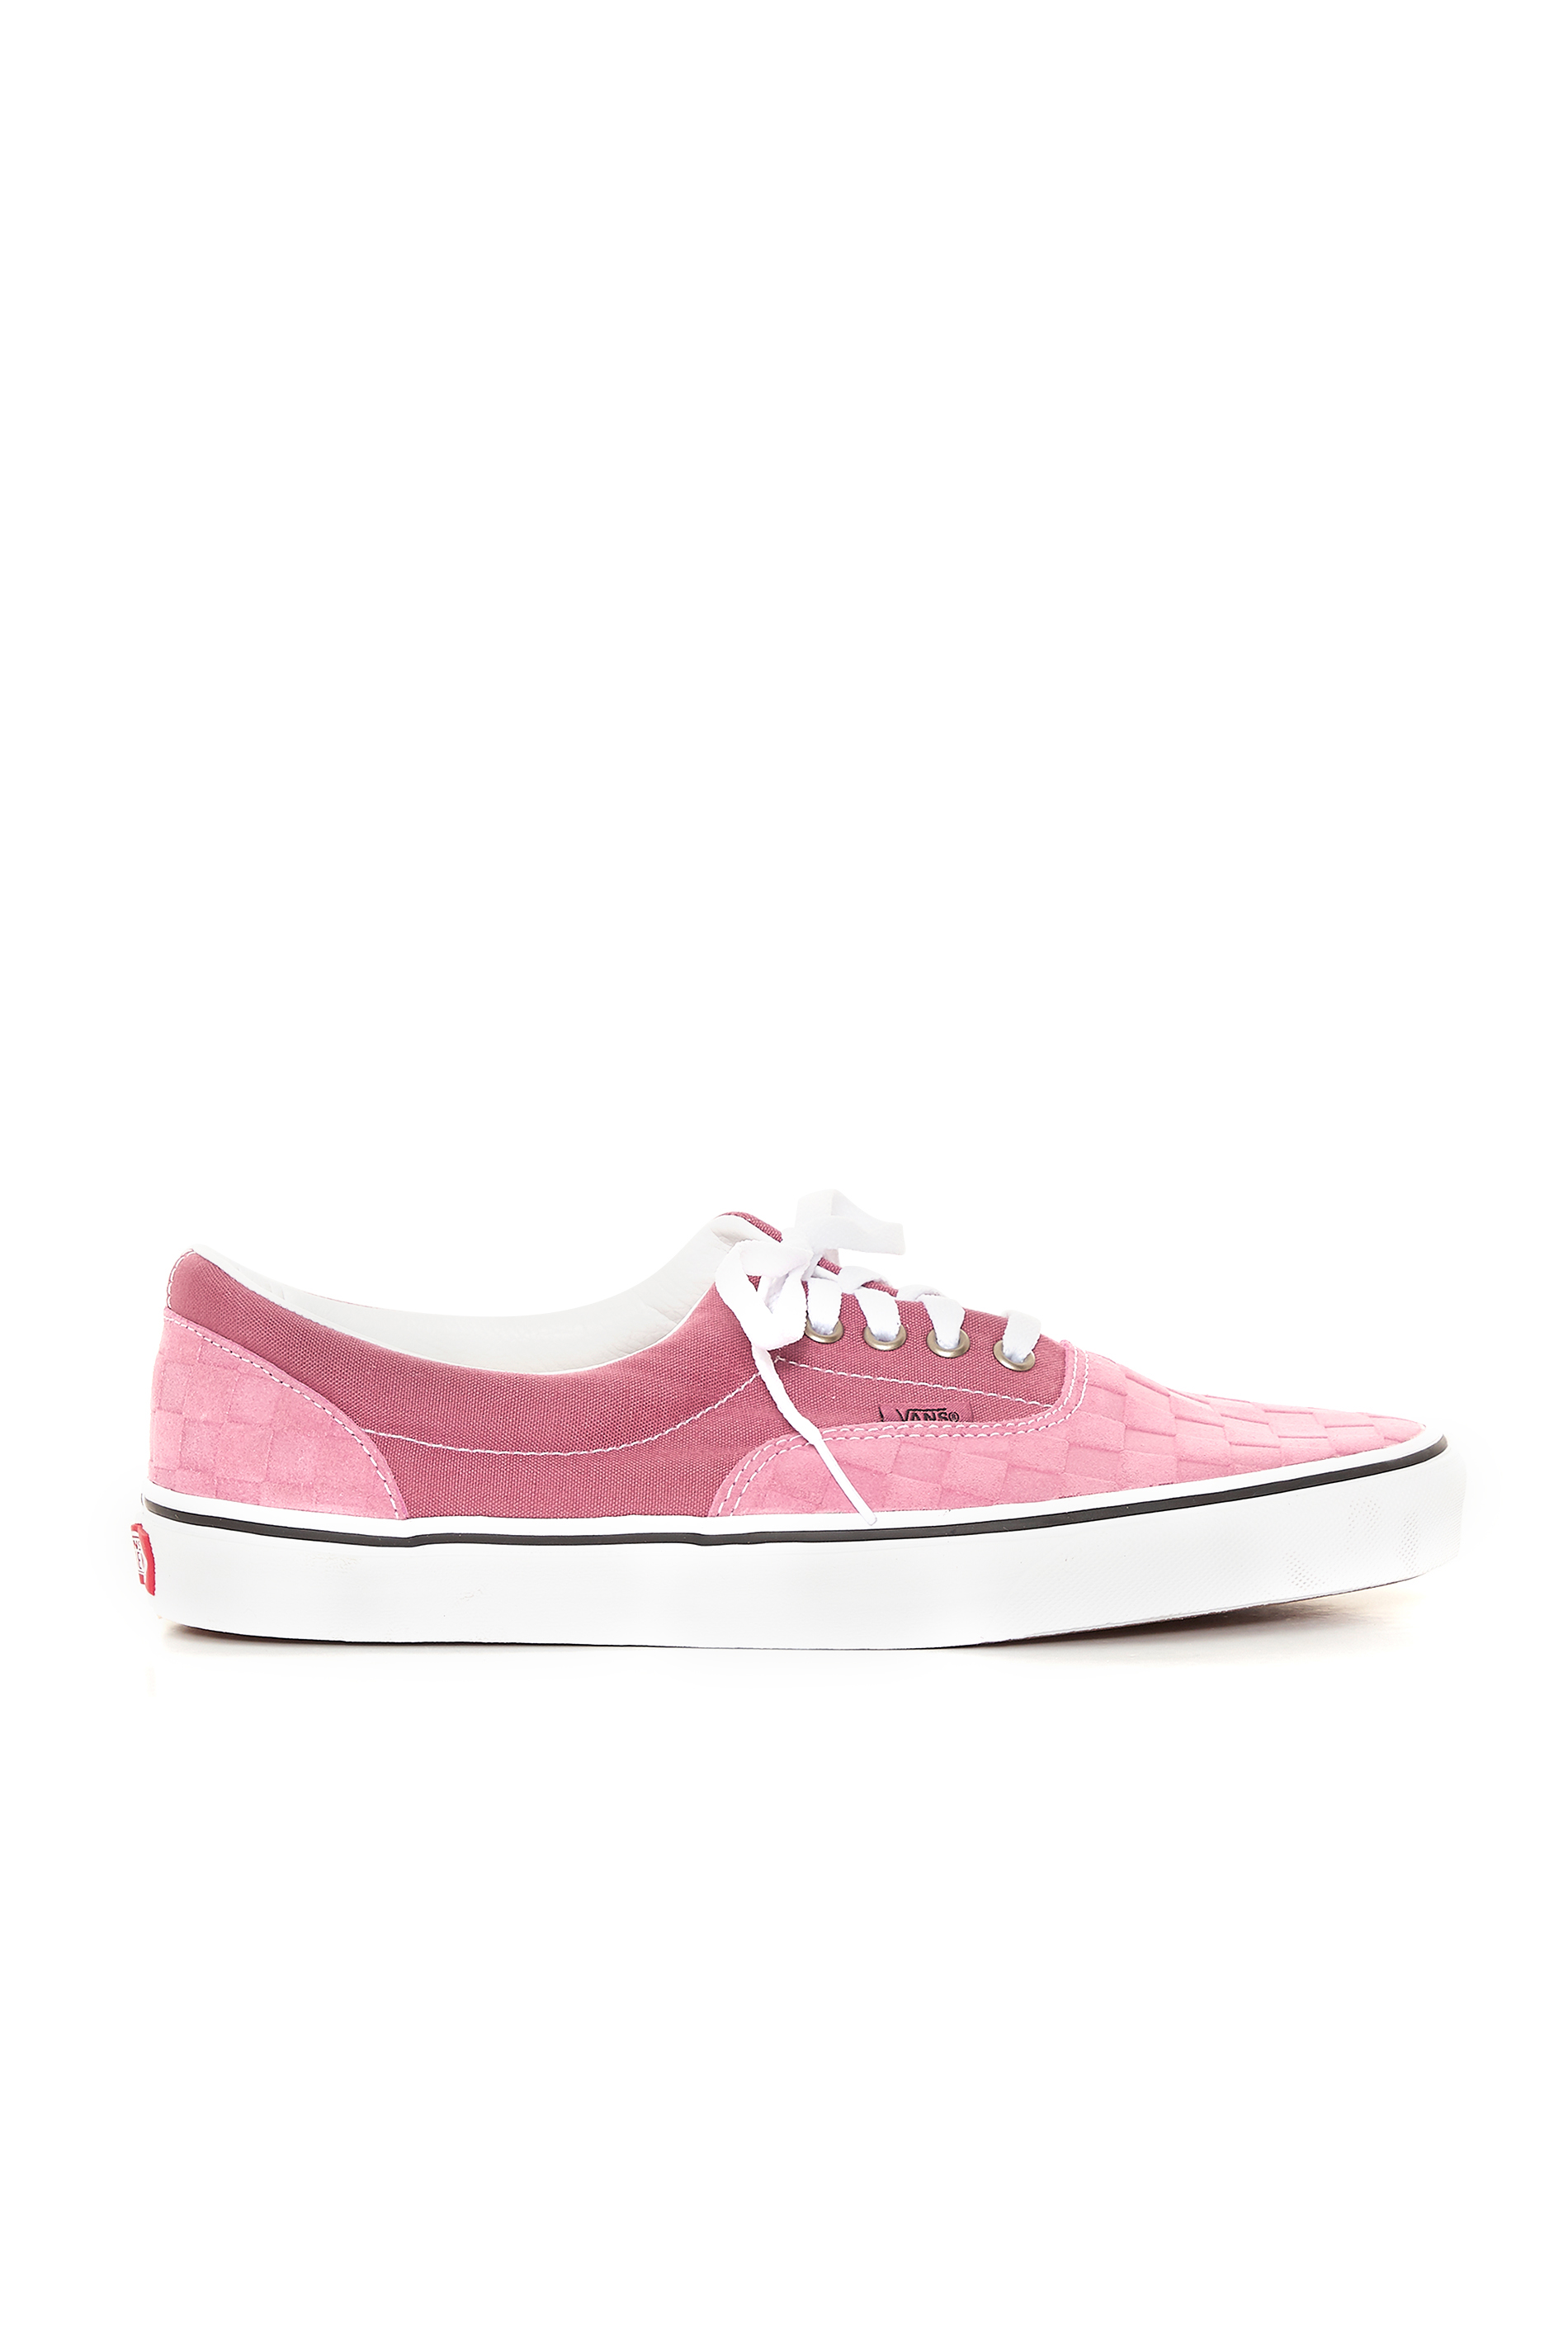 VANS Pink Era Deboss Checkerboard Trainers